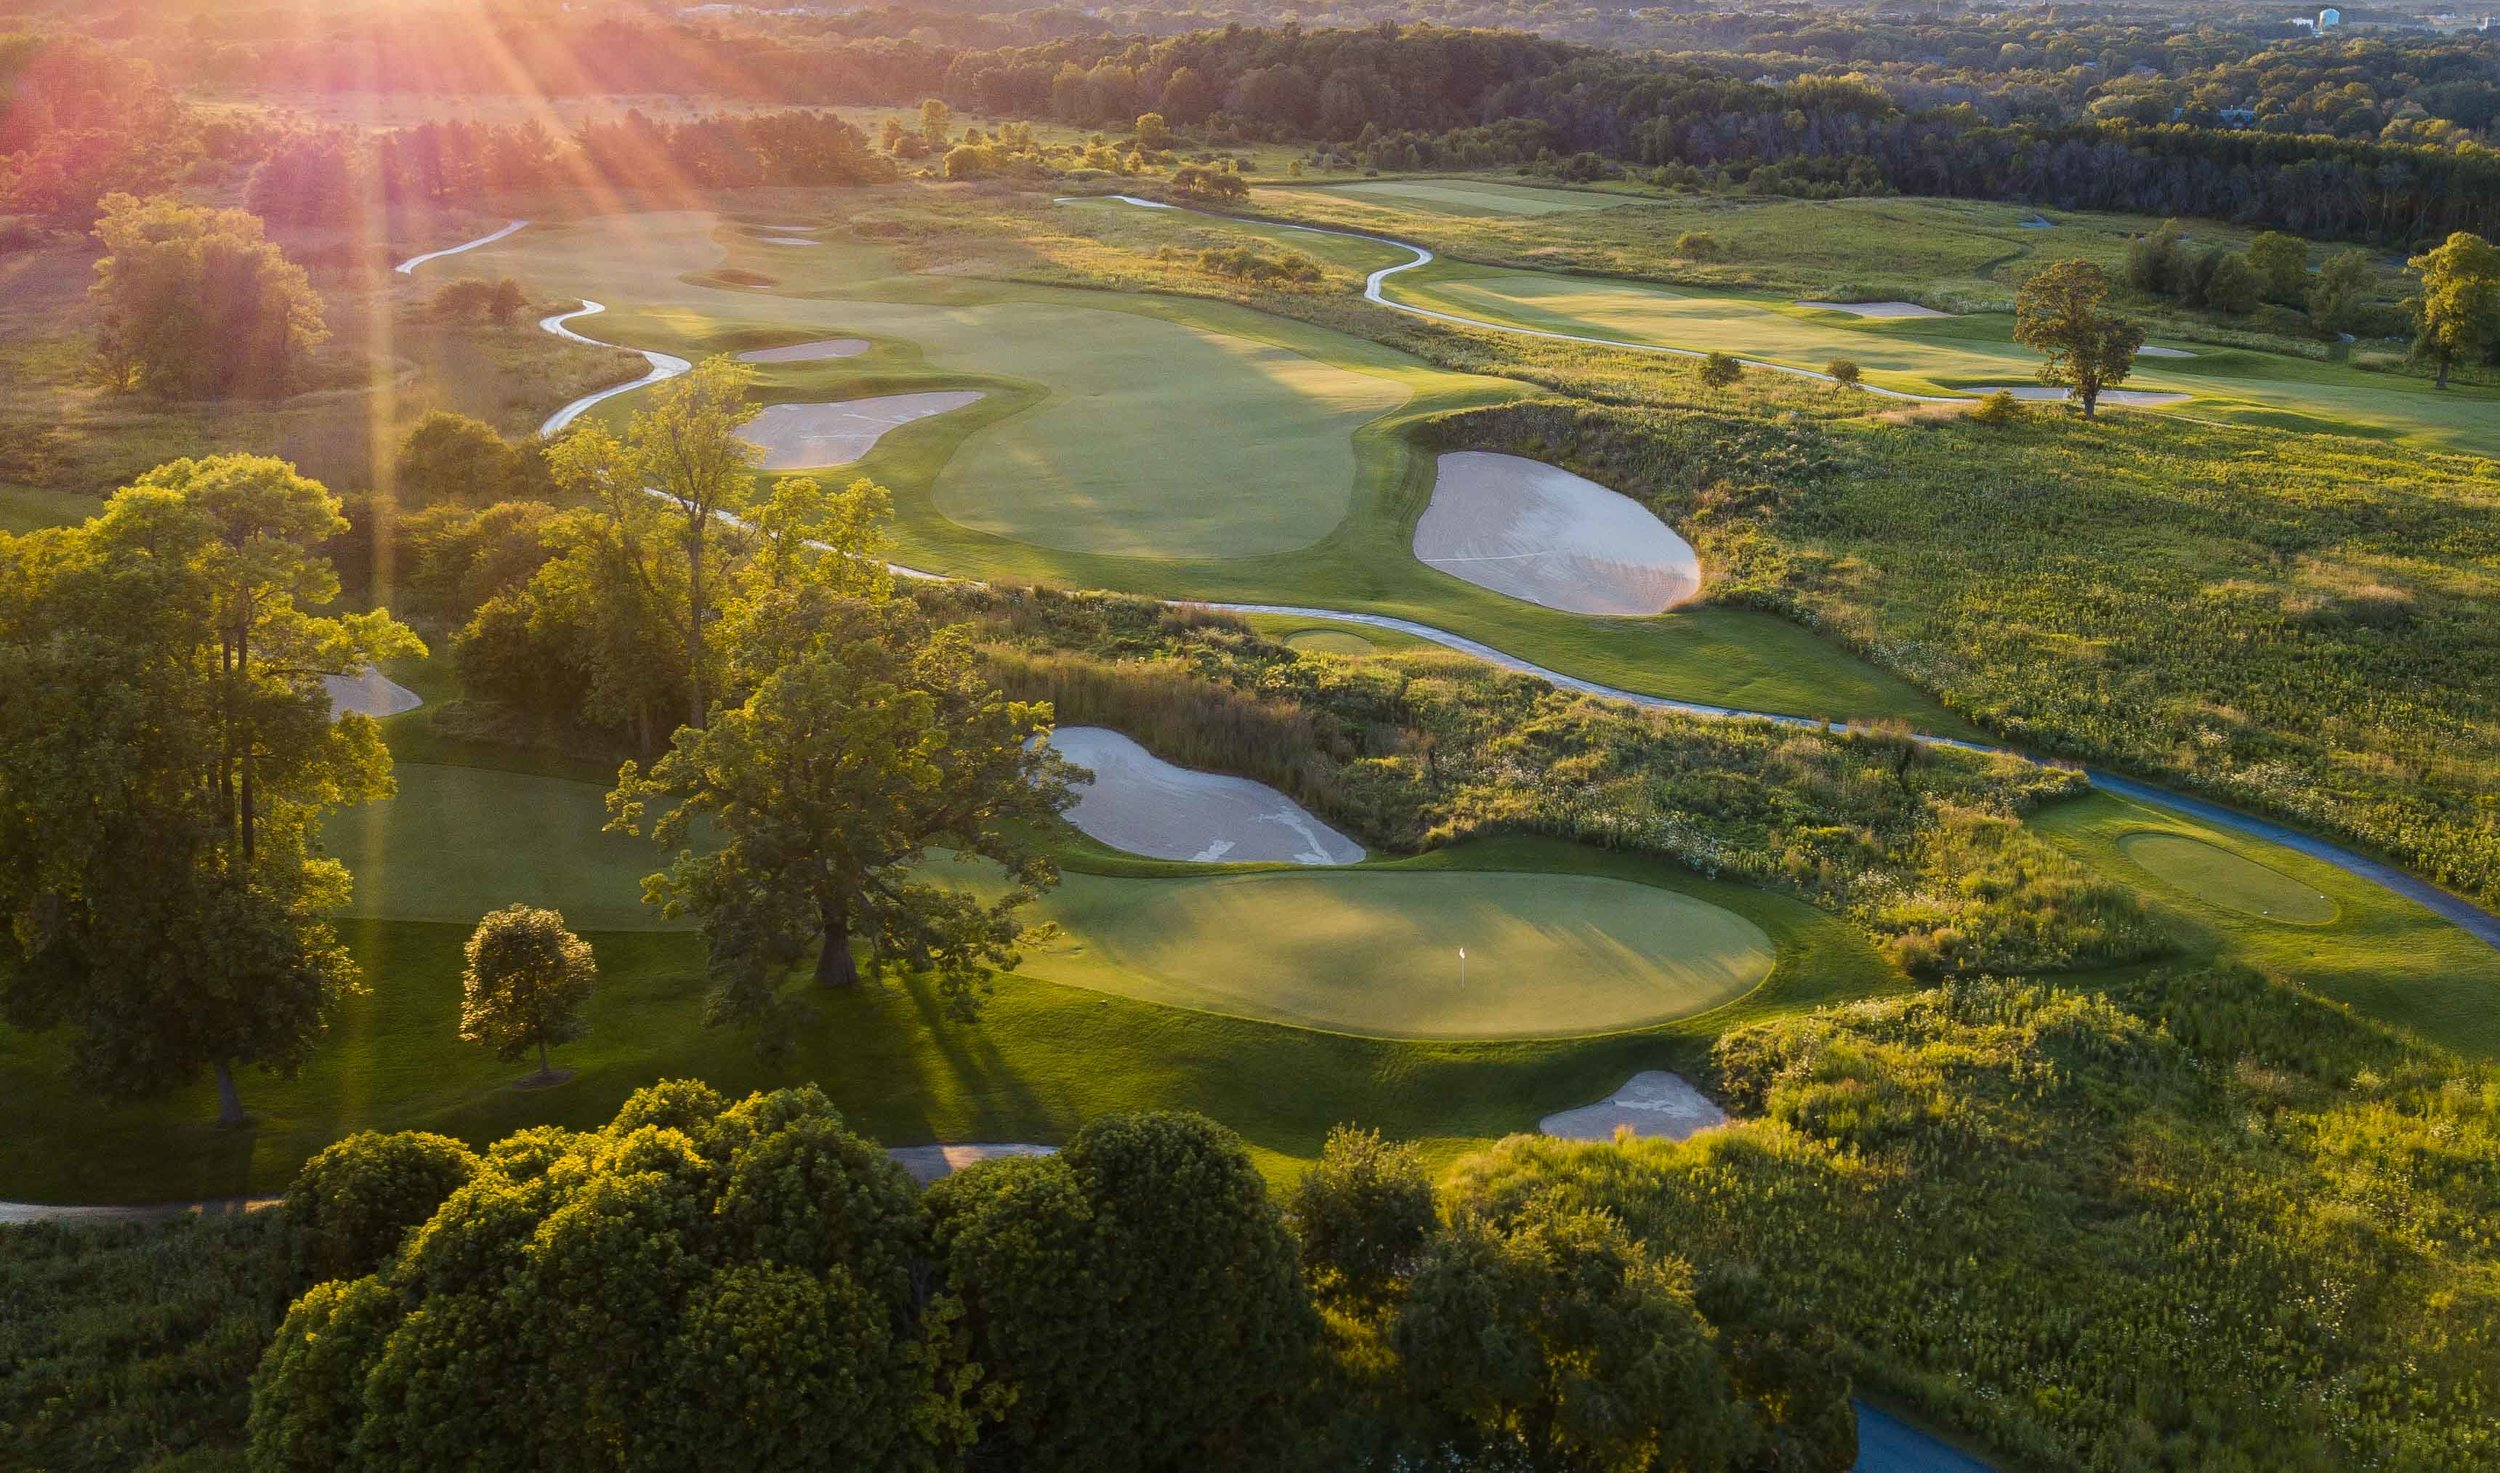 The last of the day's sun splashes down on the Meadow Valleys Course at Blackwolf Run.